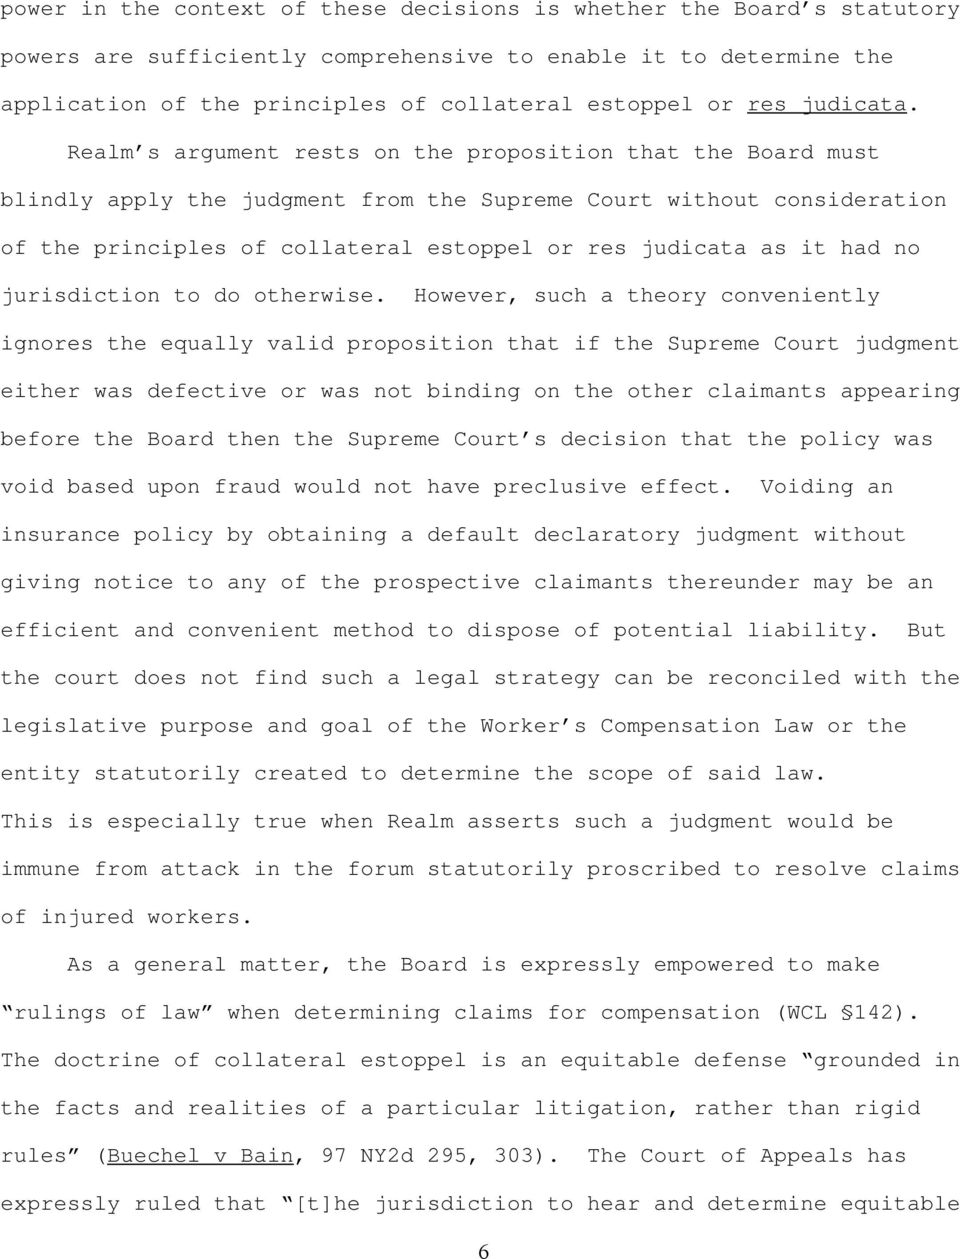 Realm s argument rests on the proposition that the Board must blindly apply the judgment from the Supreme Court without consideration of the principles of collateral estoppel or res judicata as it